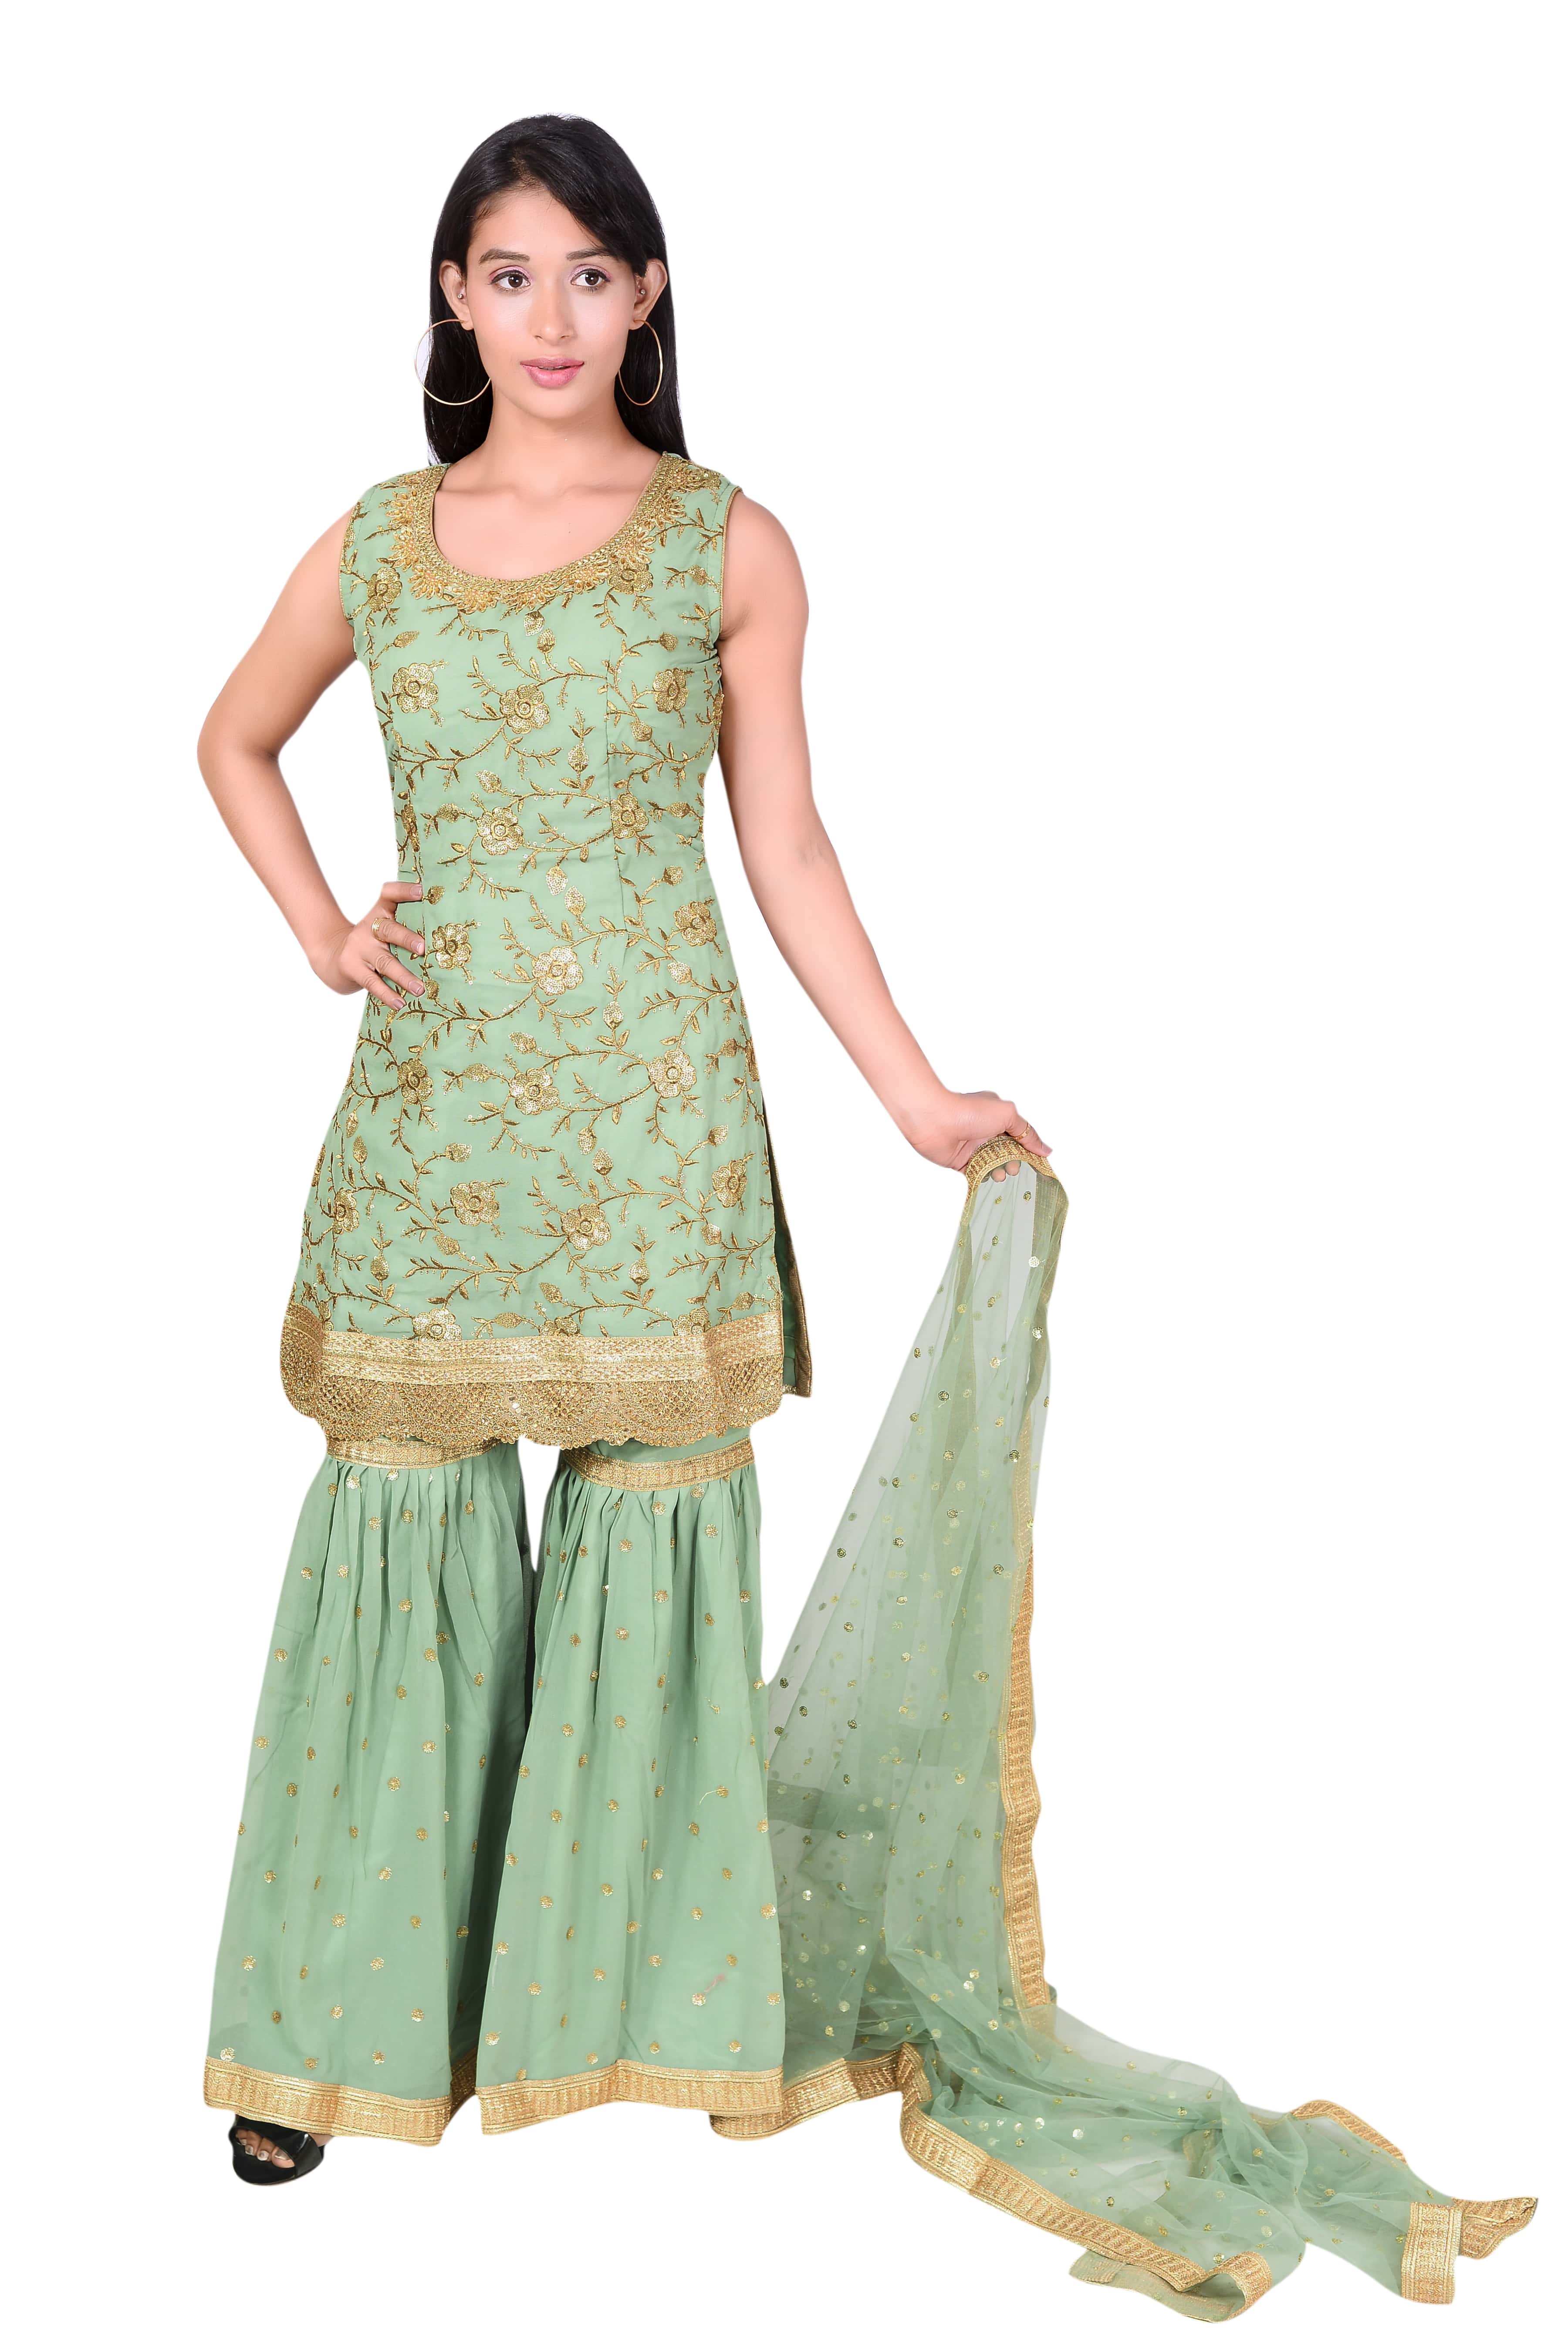 Designer Sharara Suits In Guwahati